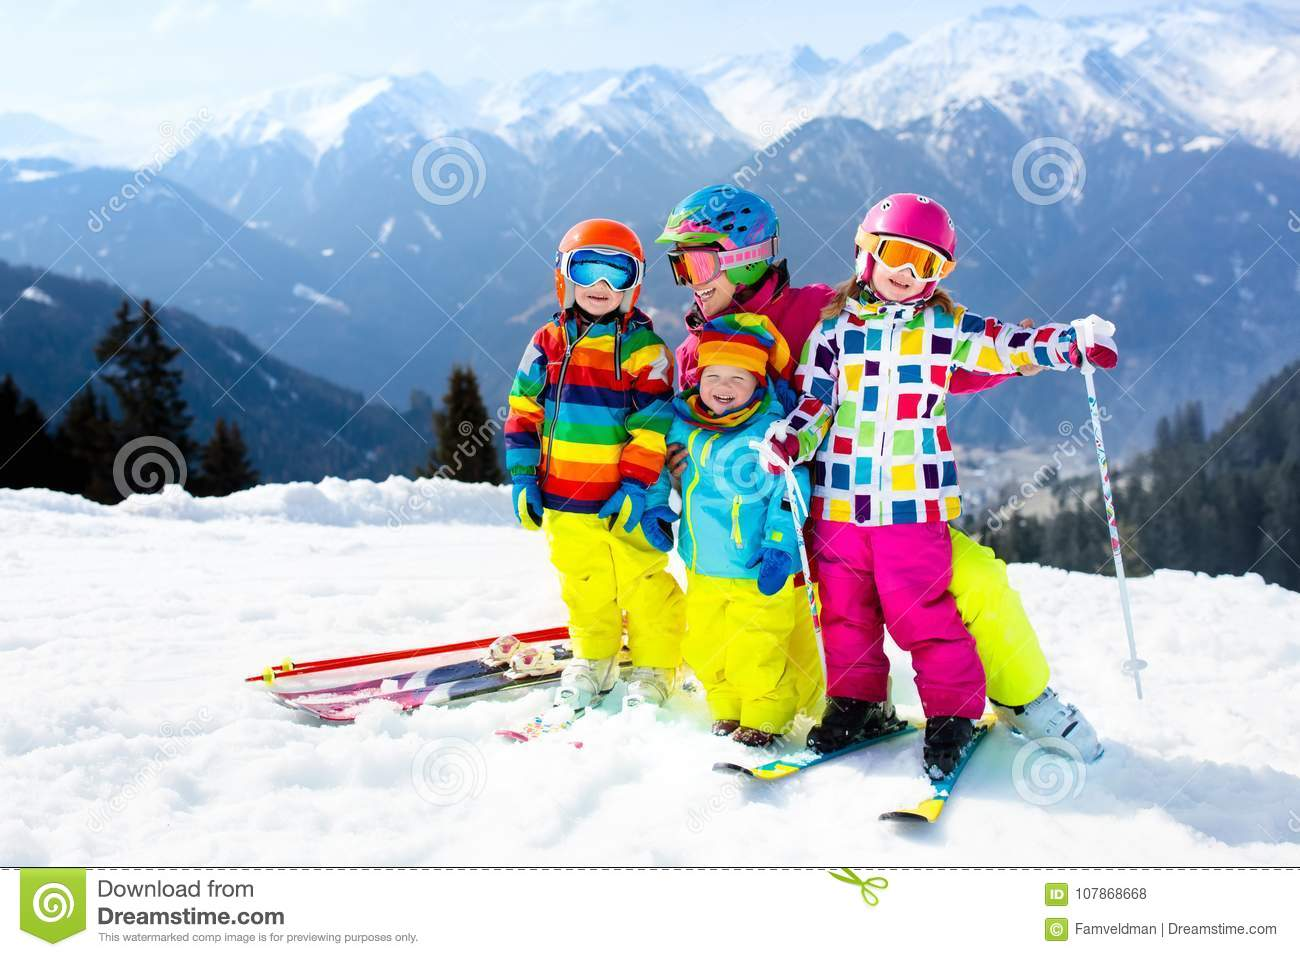 Family Ski Vacation Group Of Young Skiers In The Alps Mountains Mother And Children Skiing Winter Parents Teach Kids Alpine Downhill